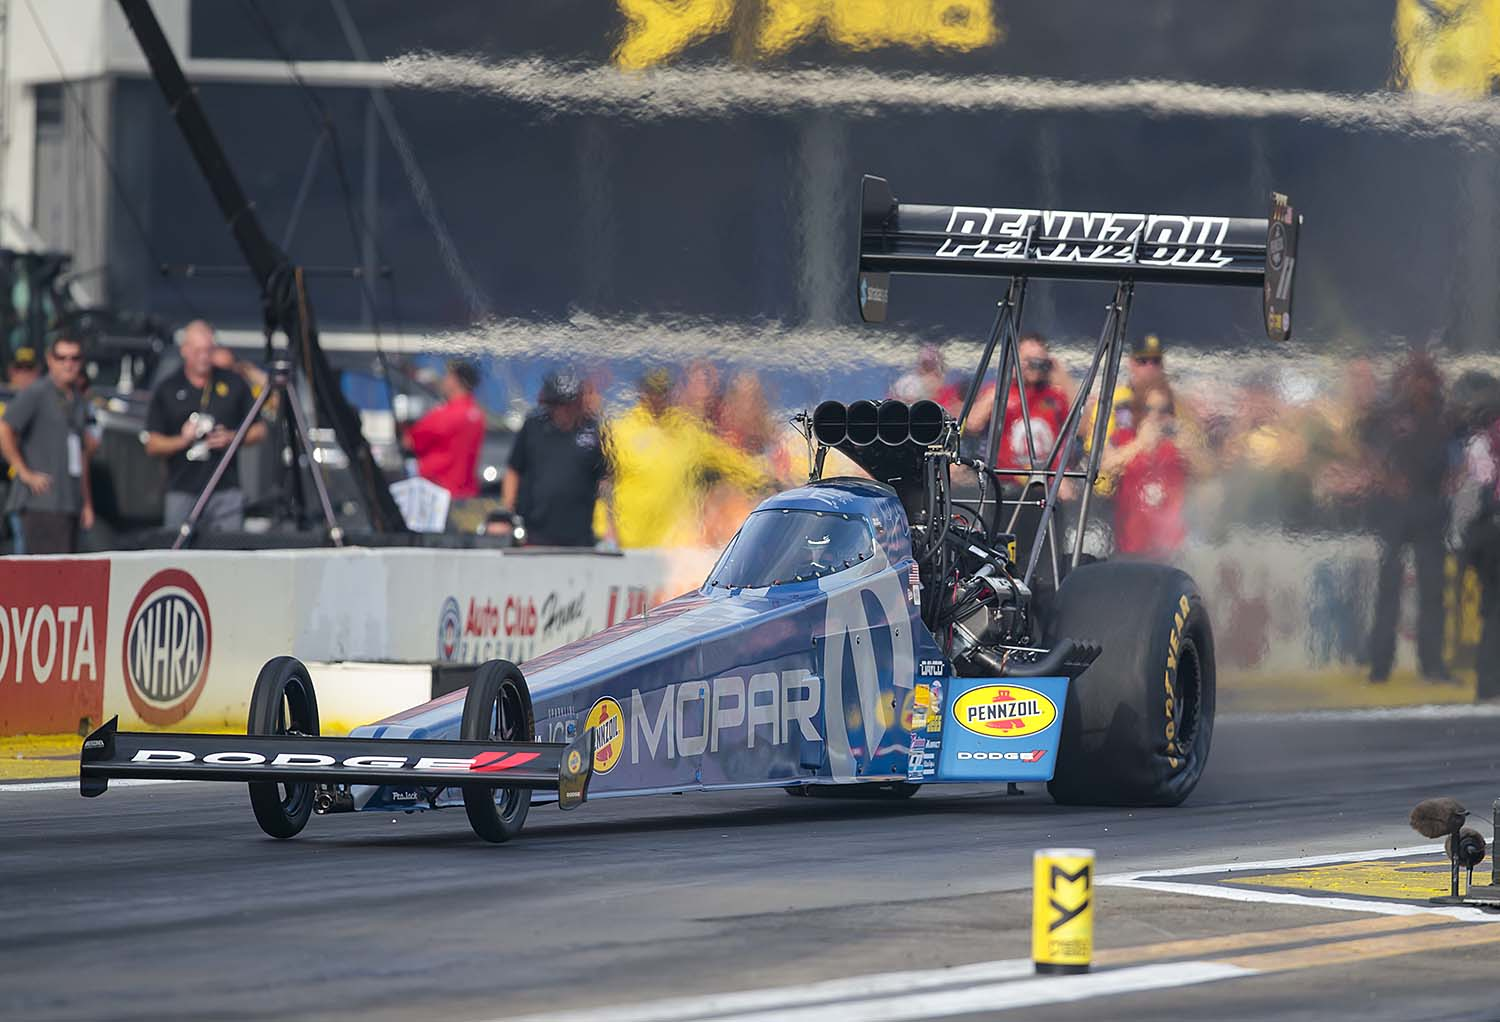 Leah rocketed to the head of the Top Fuel category by running low E.T. of Q2